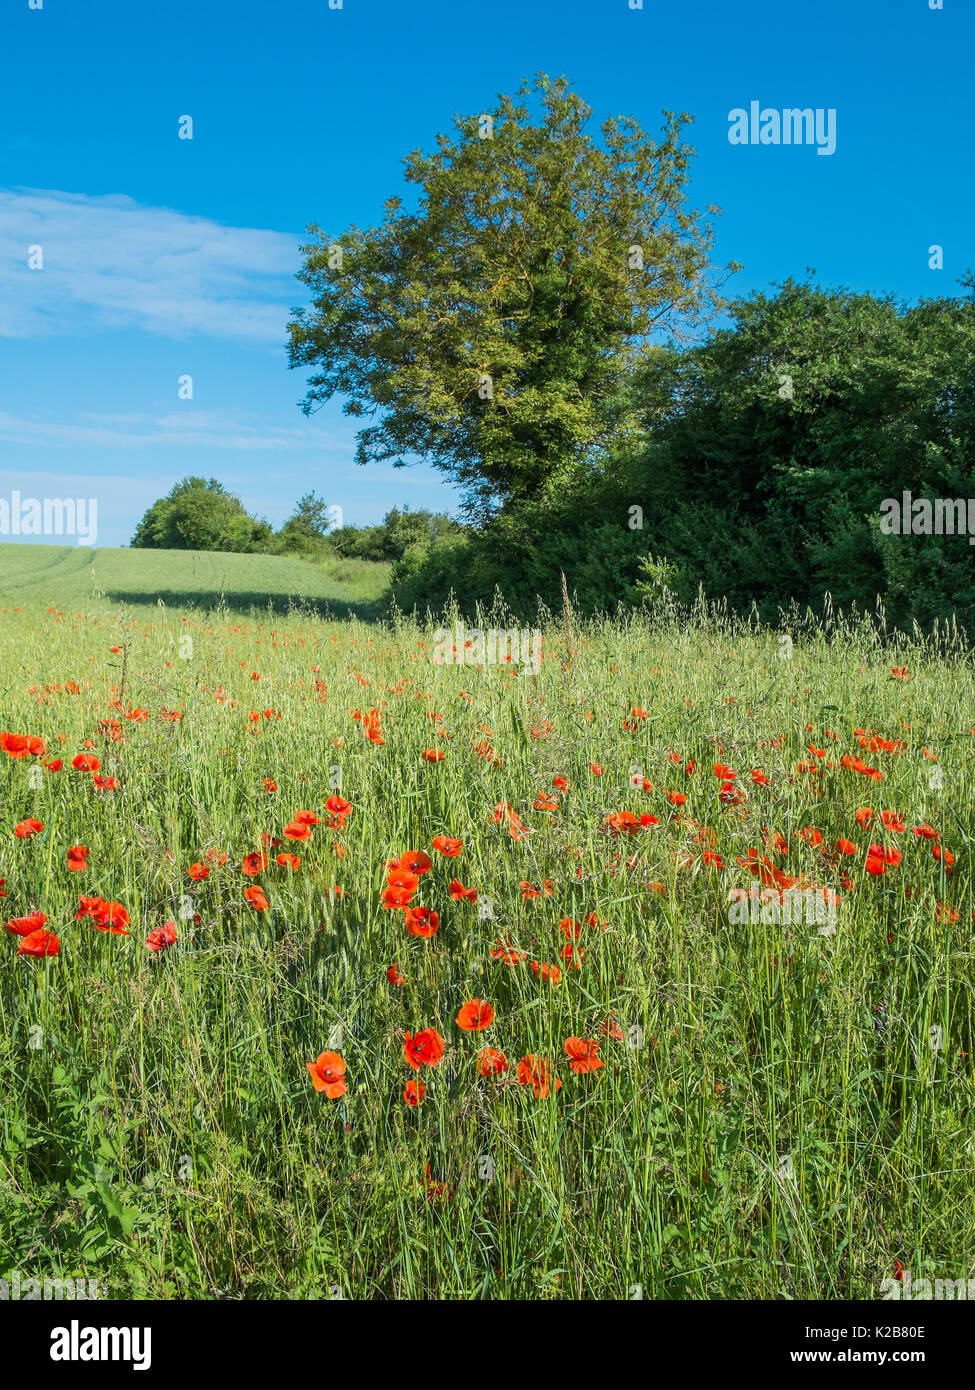 Poppies in field of barley, France. - Stock Image